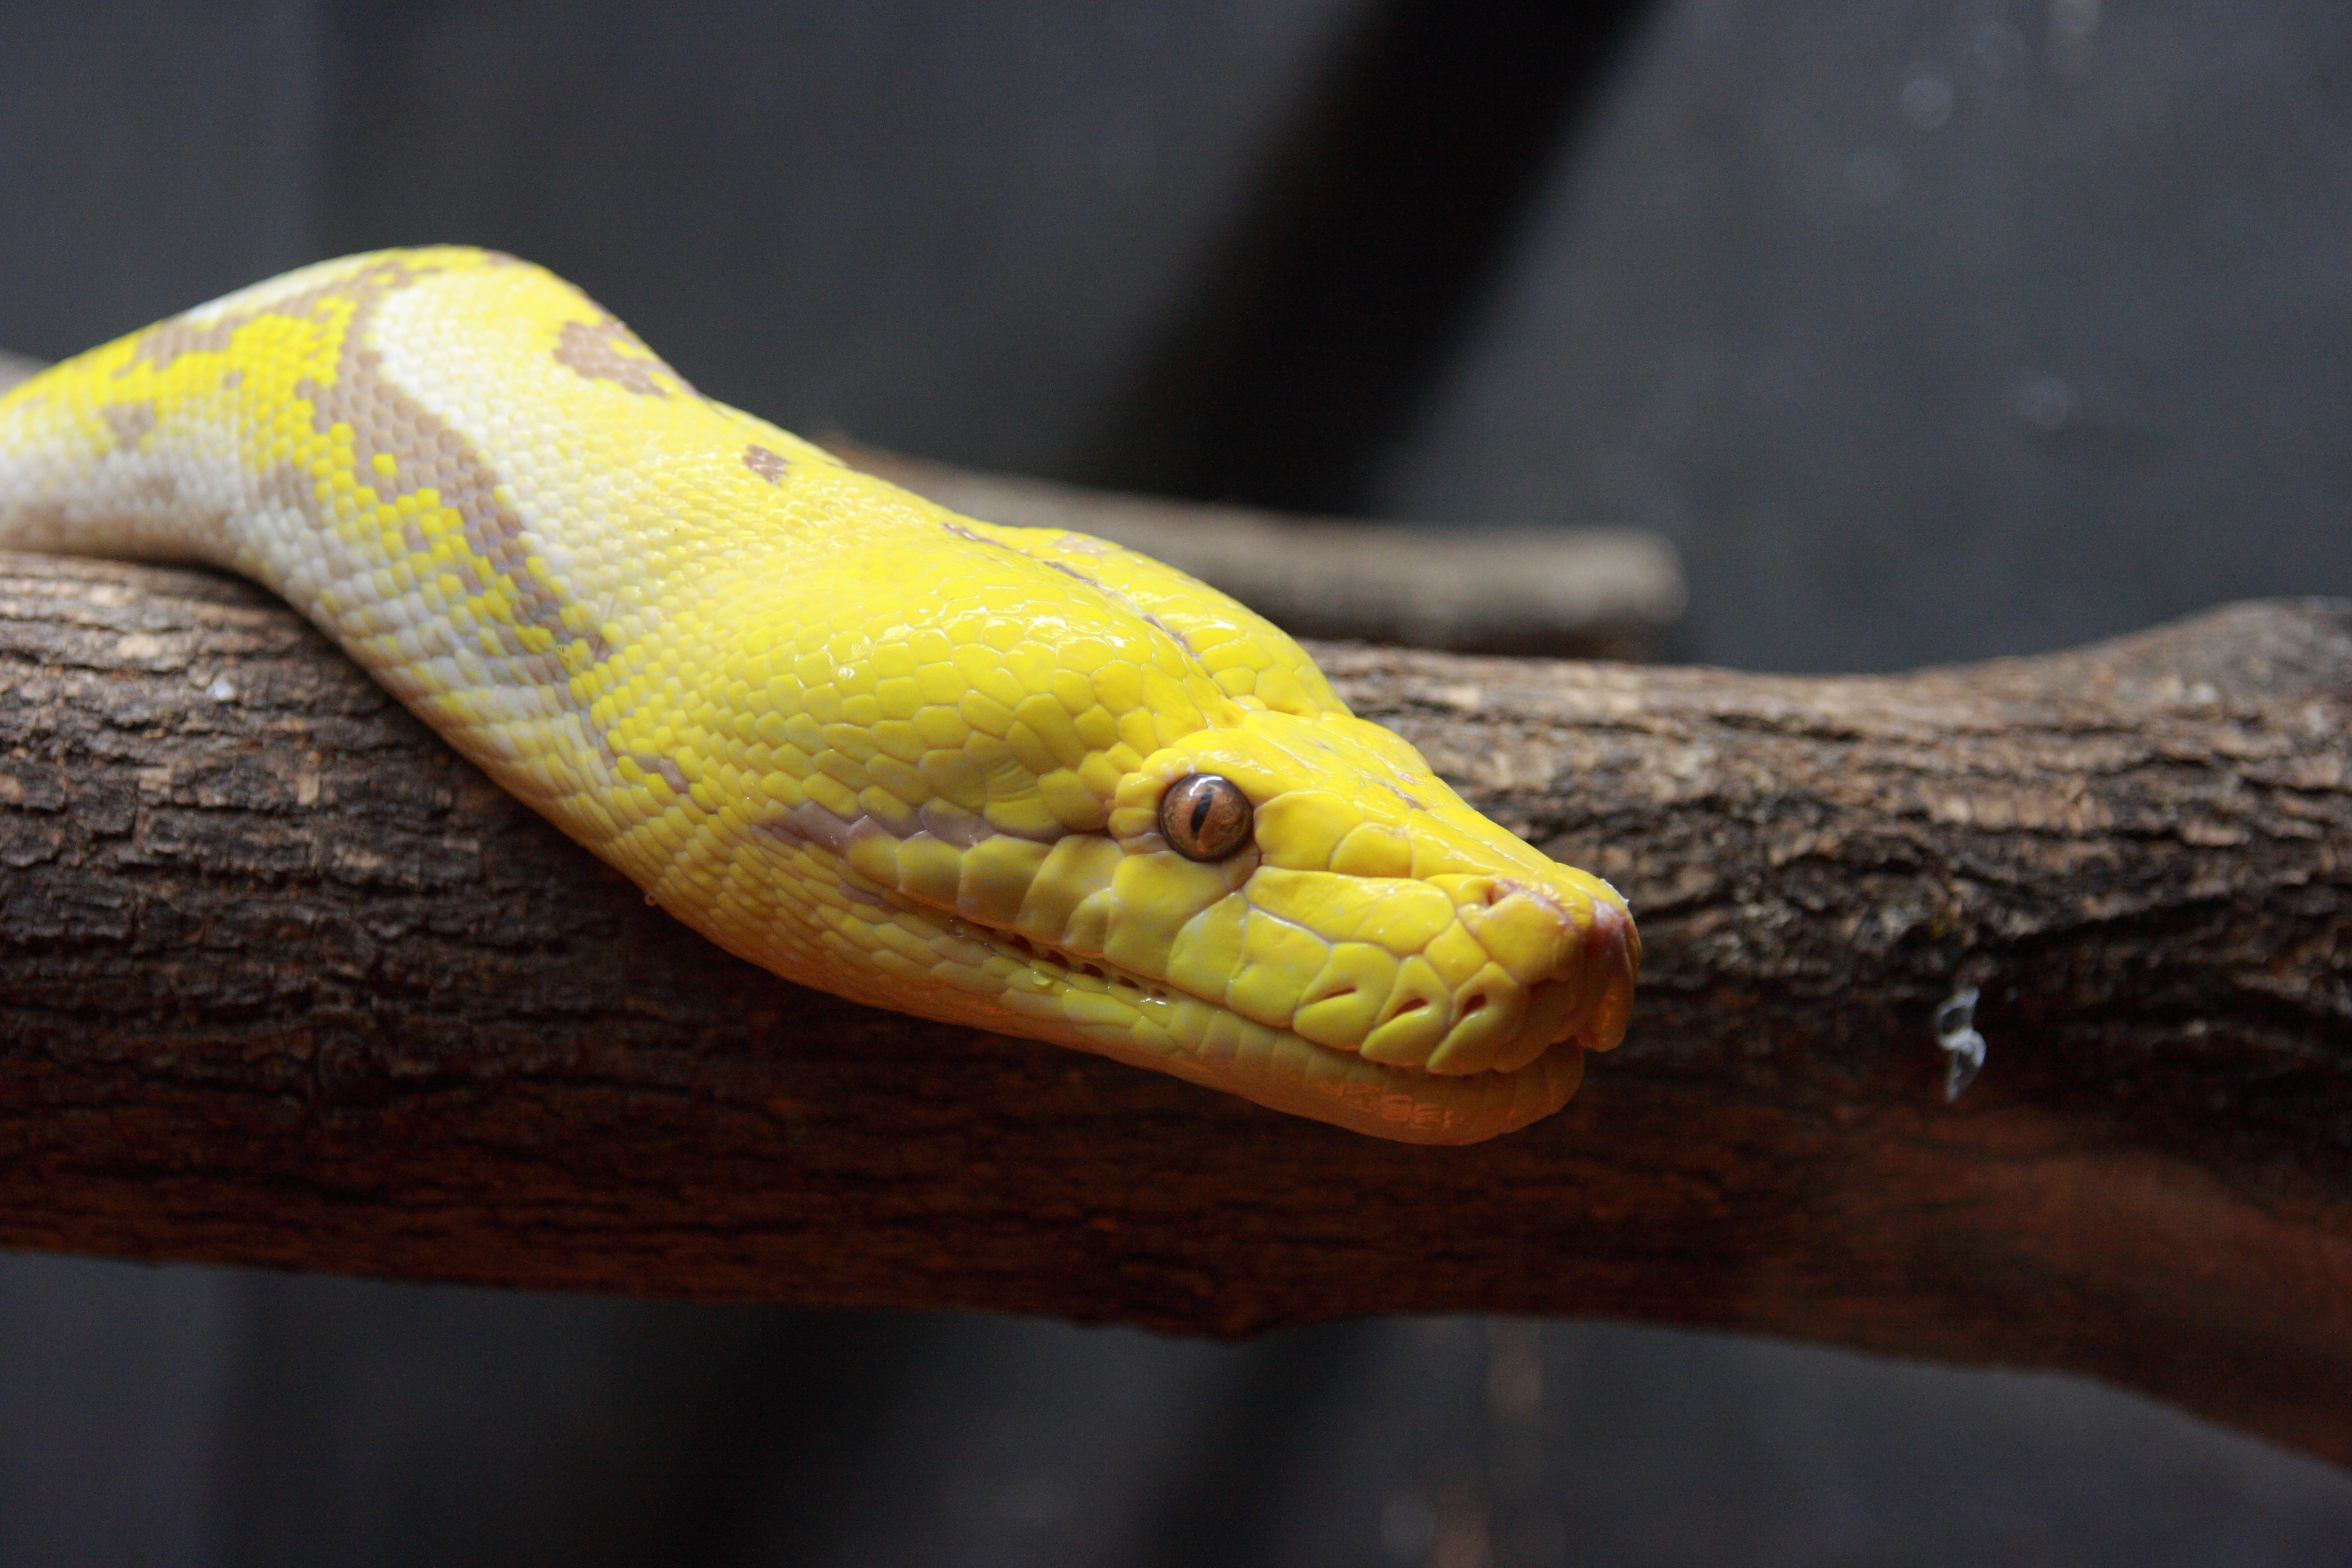 Baby Reticulated Python Reticulated python with an